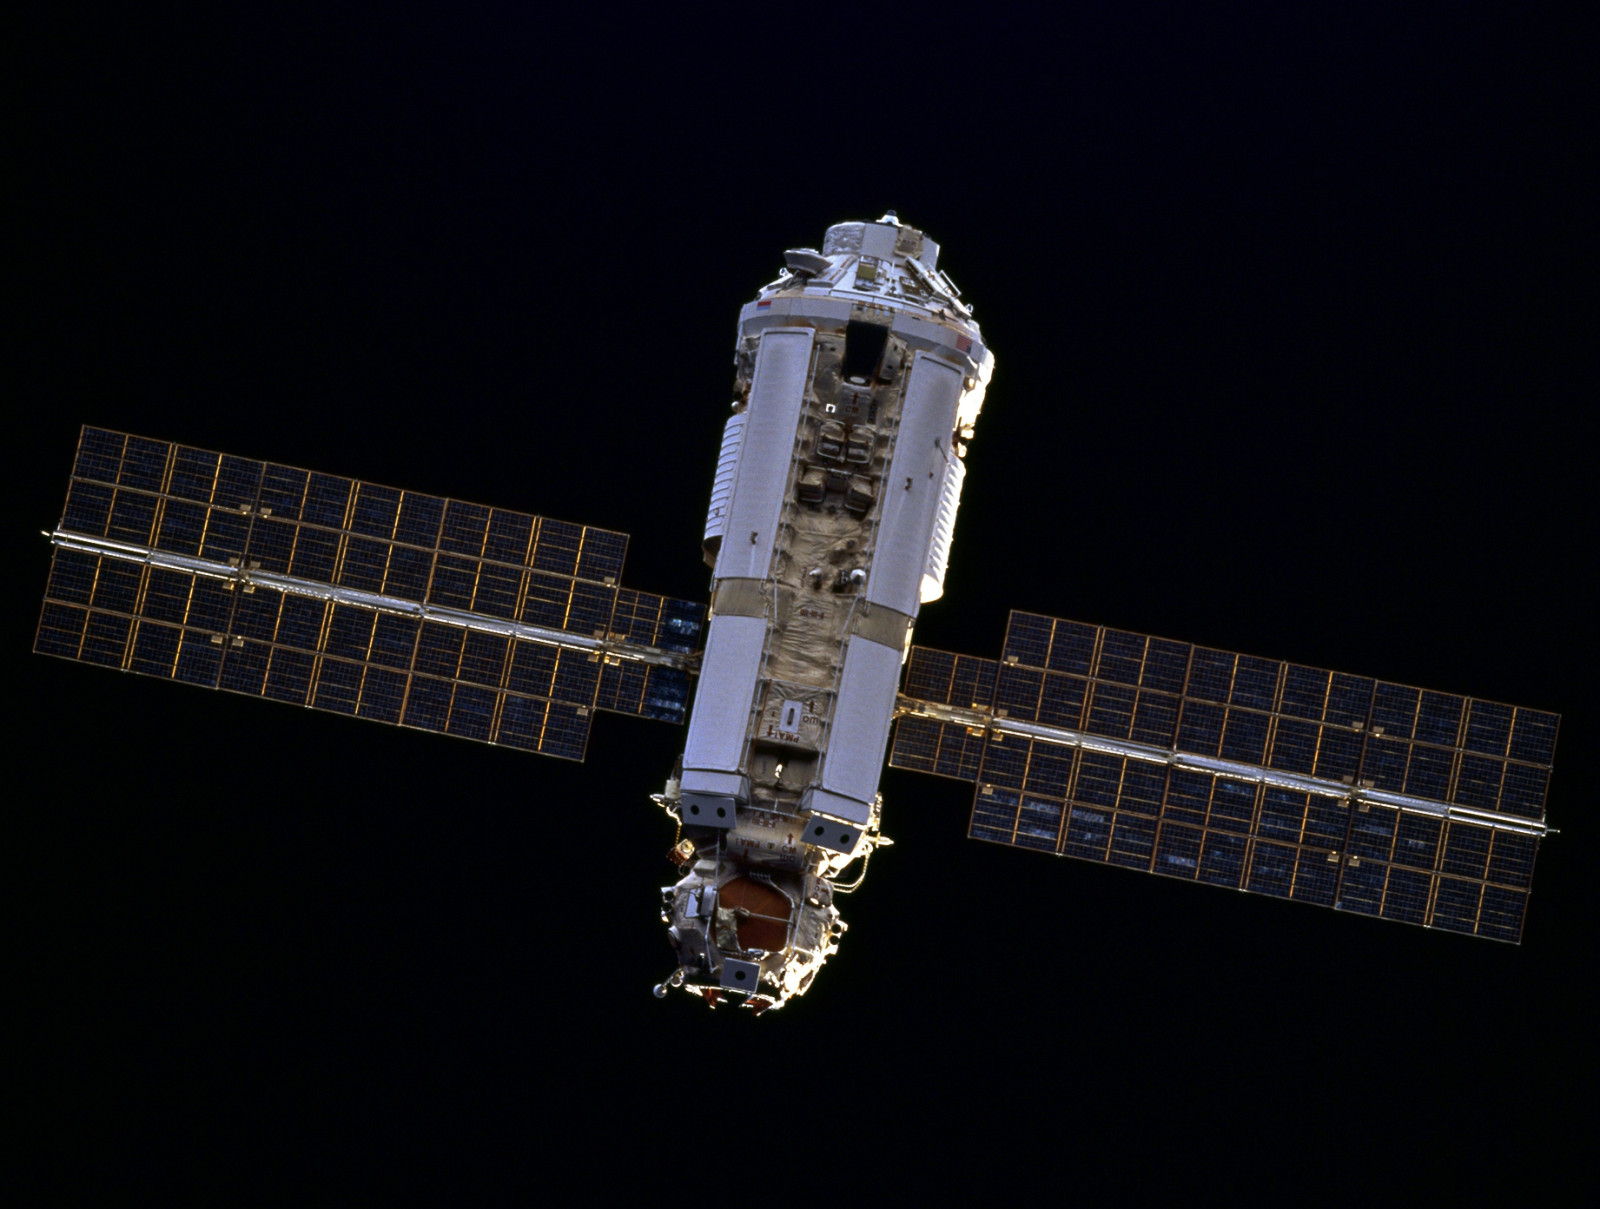 Zarya, the first component of the International Space Station, is seen by the approaching STS-88 space shuttle mission in 1998. Photo Credit: NASA